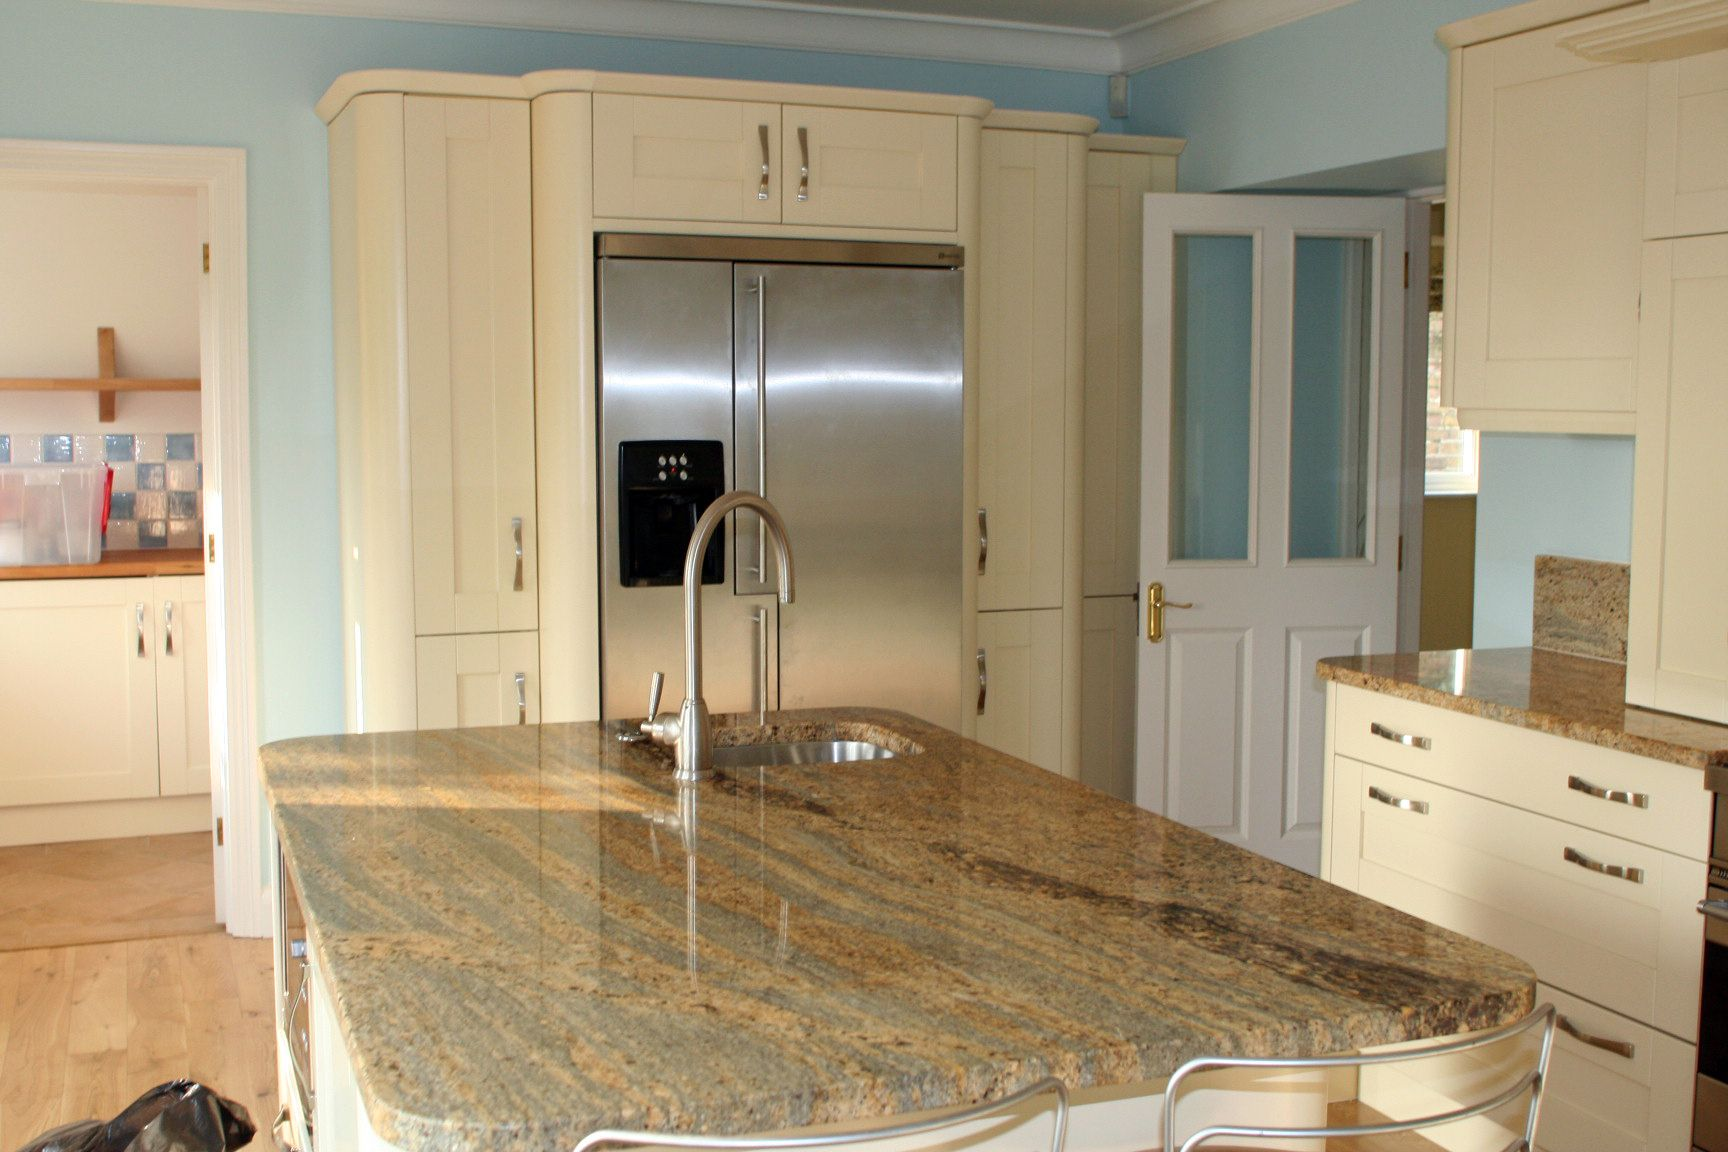 Kitchen Granite Worktop Kashmir Gold Granite Countertops Kashmir Gold Granite Kitchen